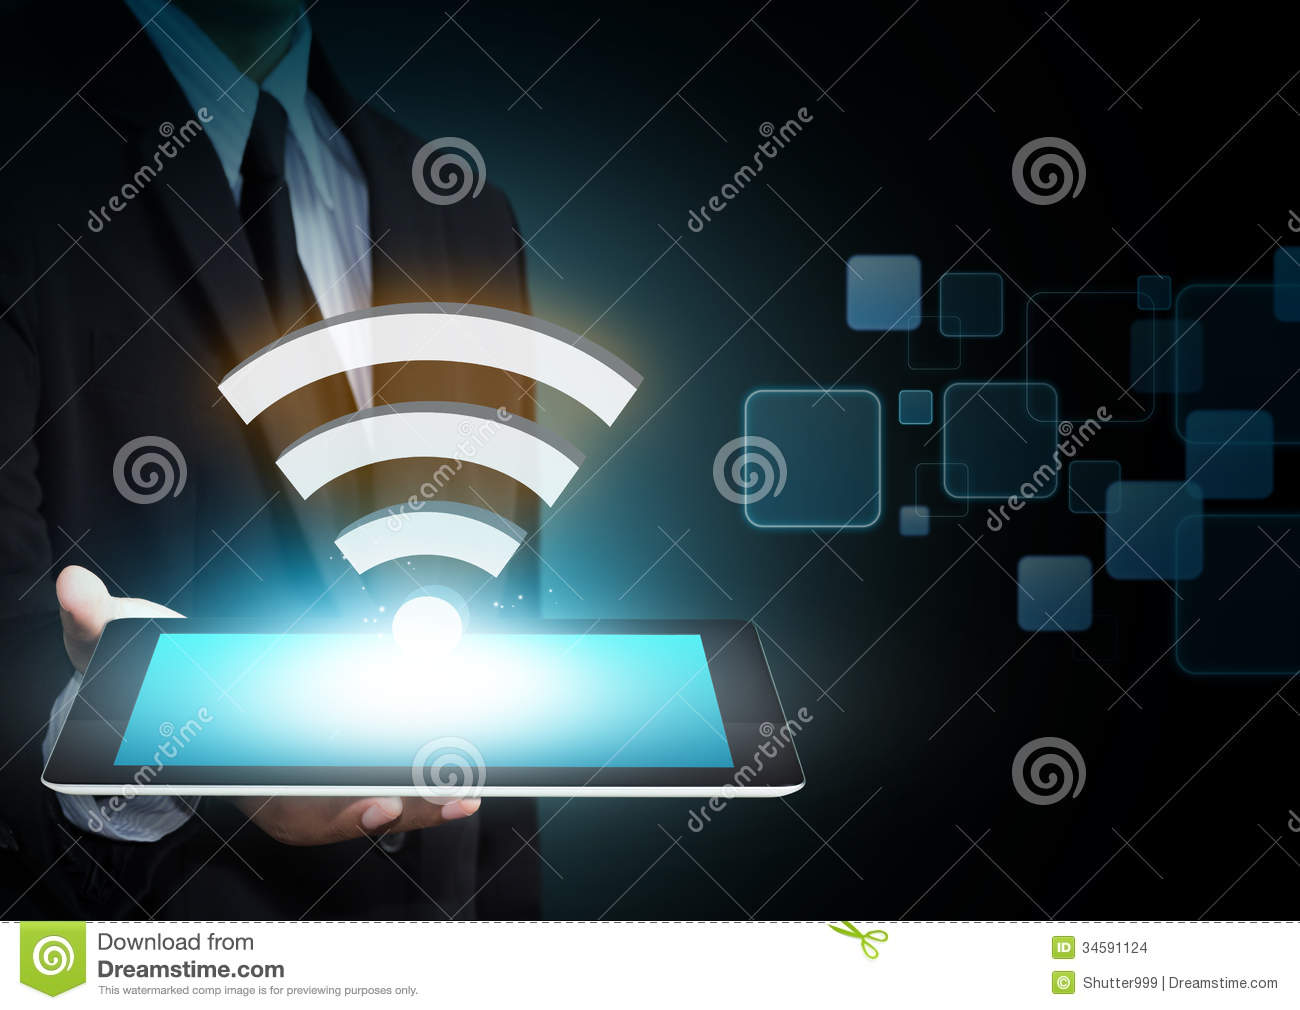 technology and cyberspace Free essay: a major part of the world today revolves around technology and cyberspace almost every day one will use a type of computer in some way, whether.